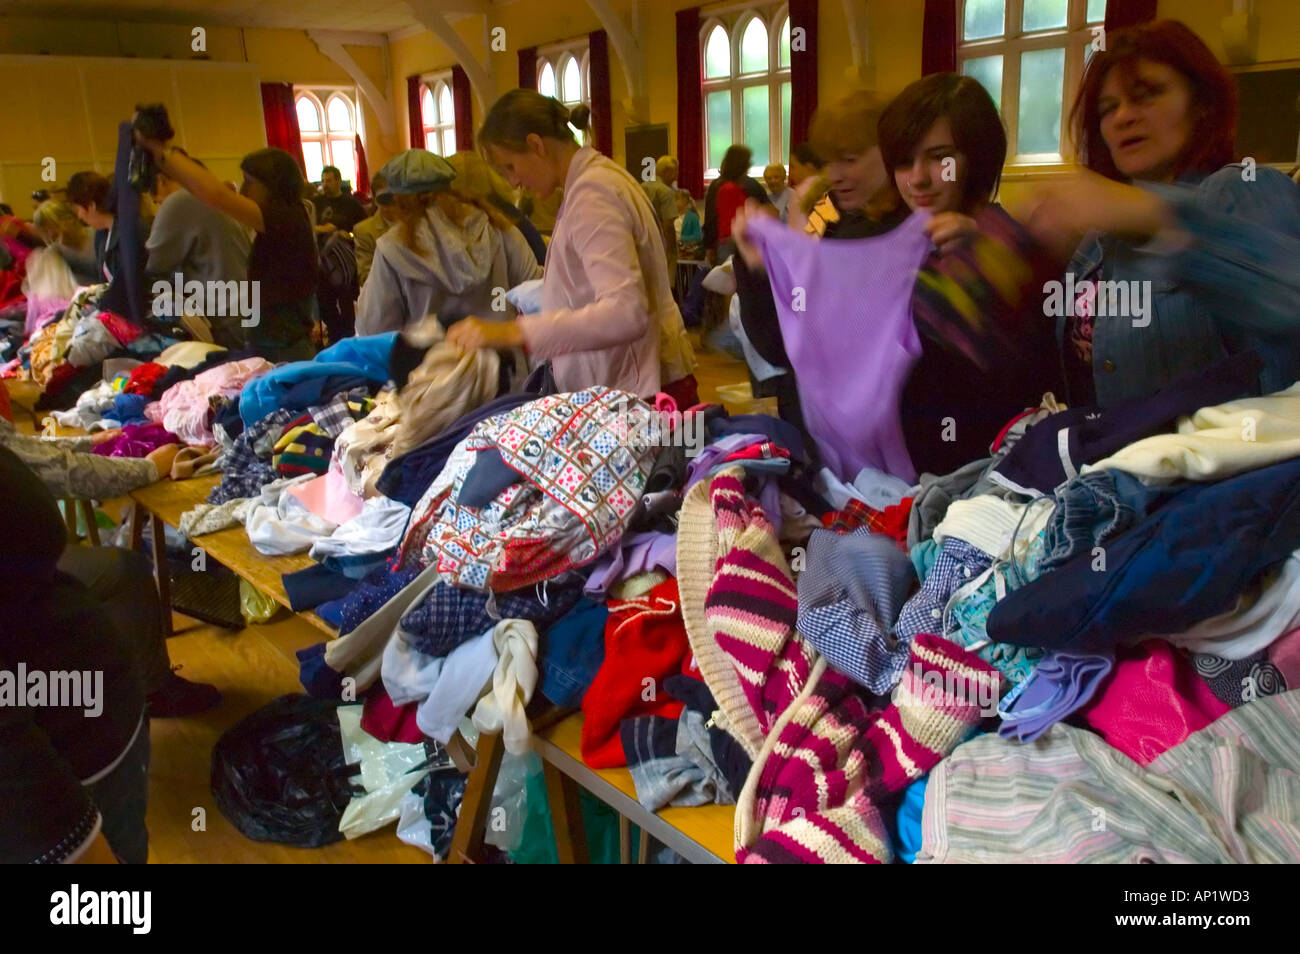 Jumble Sale - Stock Image